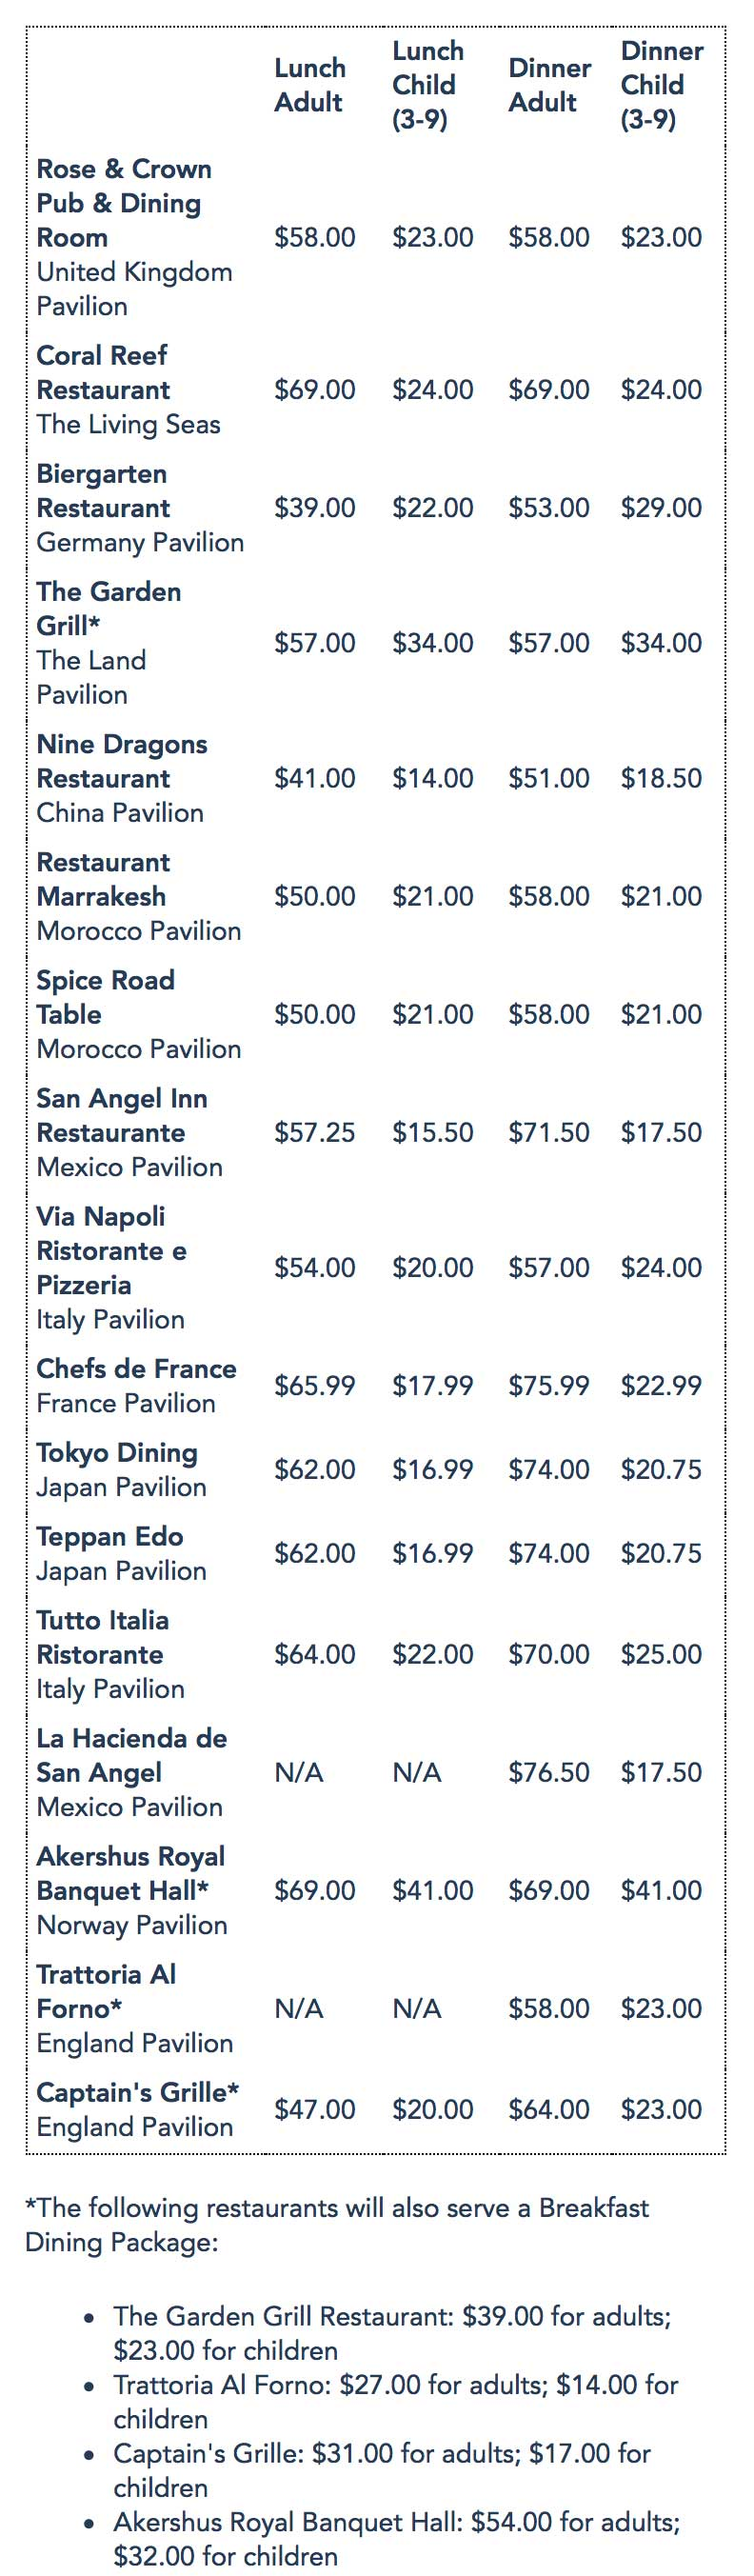 2016 Candlelight Processional Dining Package pricing